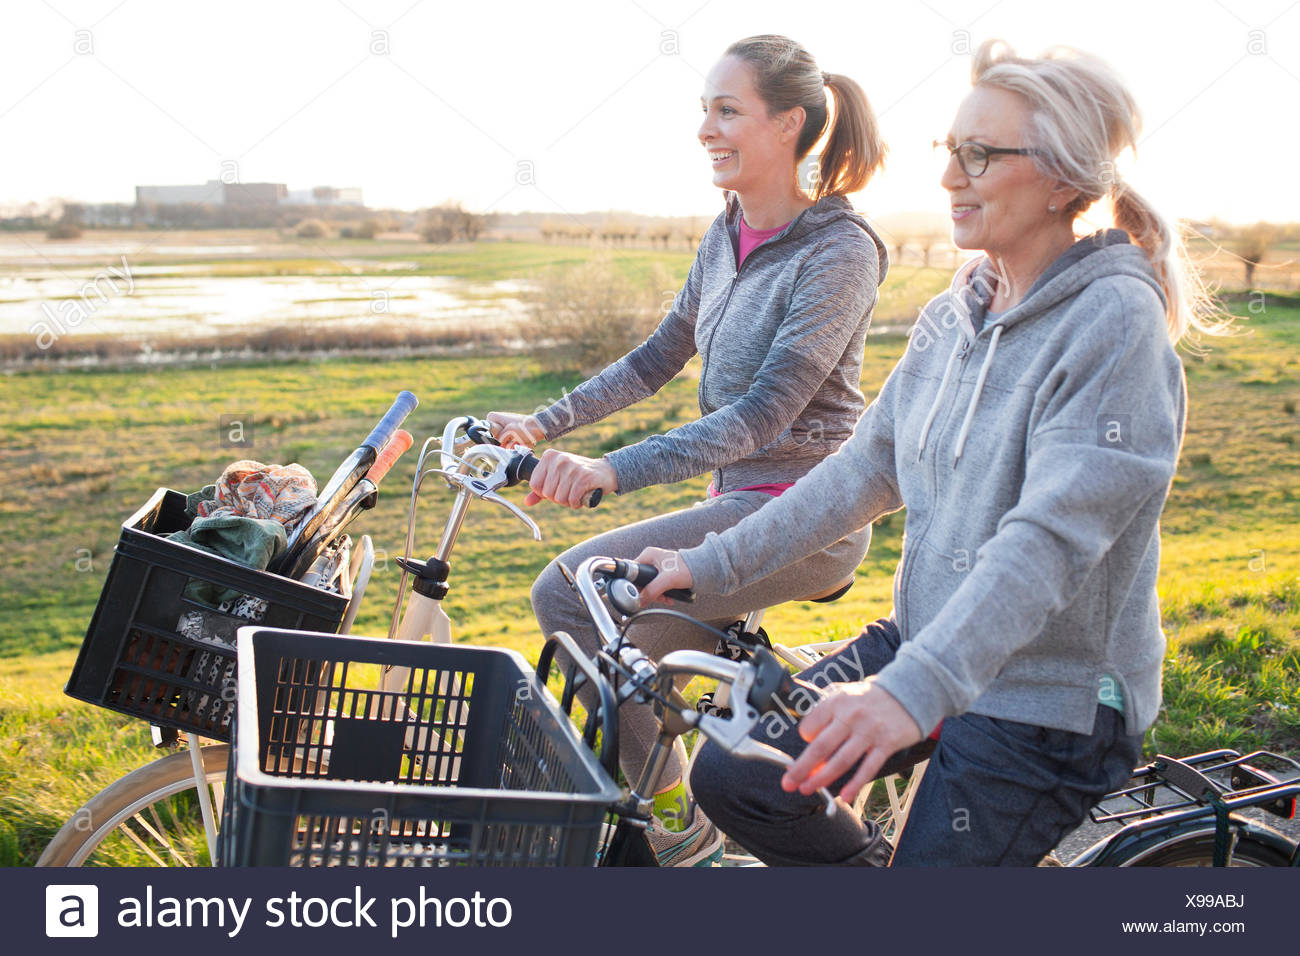 Side view of women cycling by marshland smiling - Stock Image